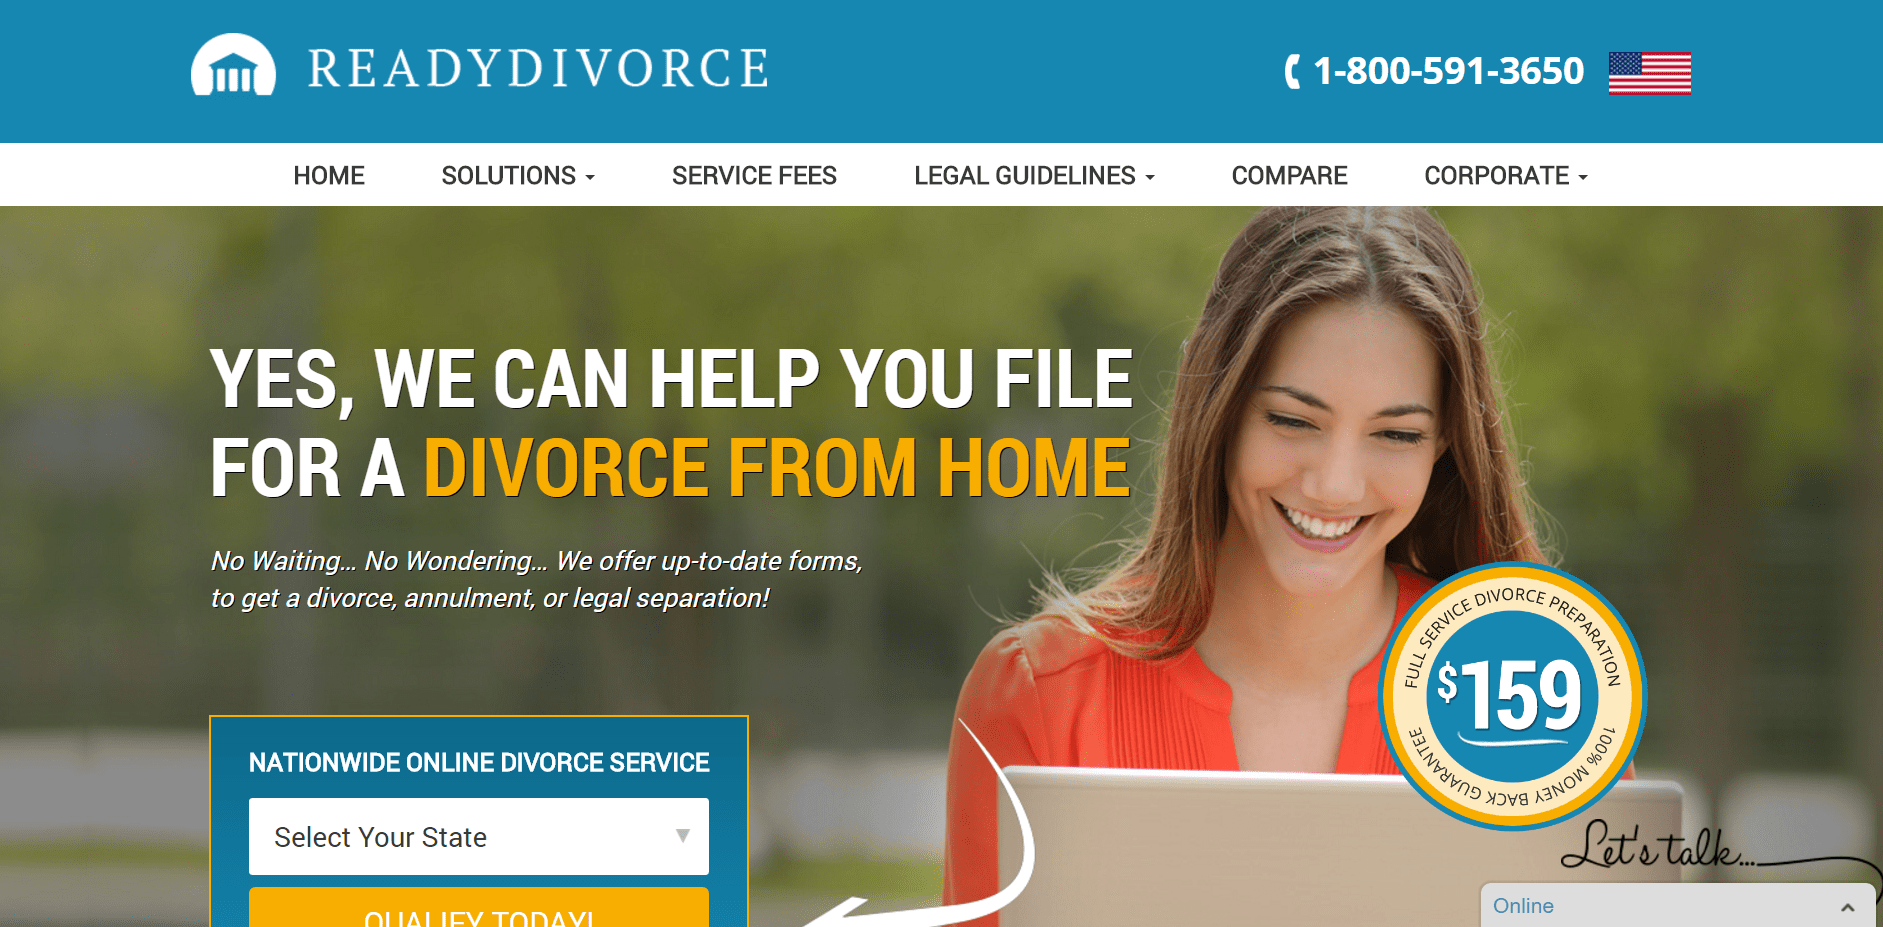 ReadyDivorce.com online divorce service